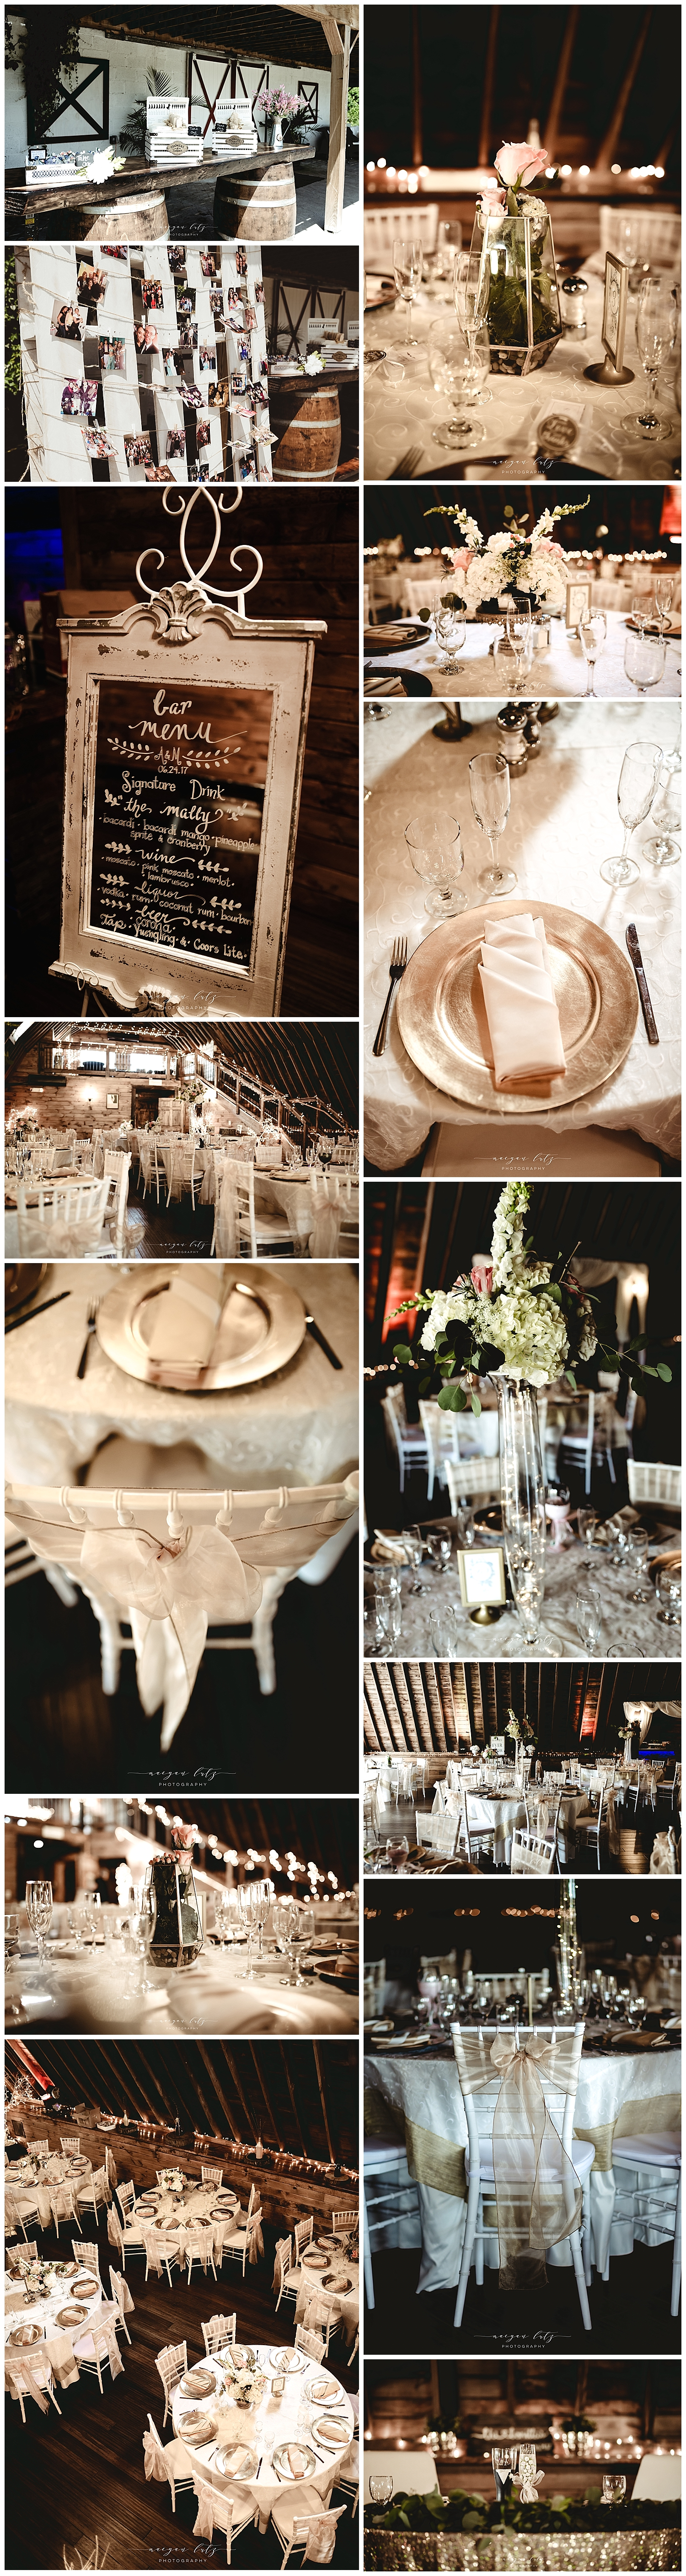 Wedding reception at The Barn at Glistening Pond, Falls PA by Photographer in NEPA